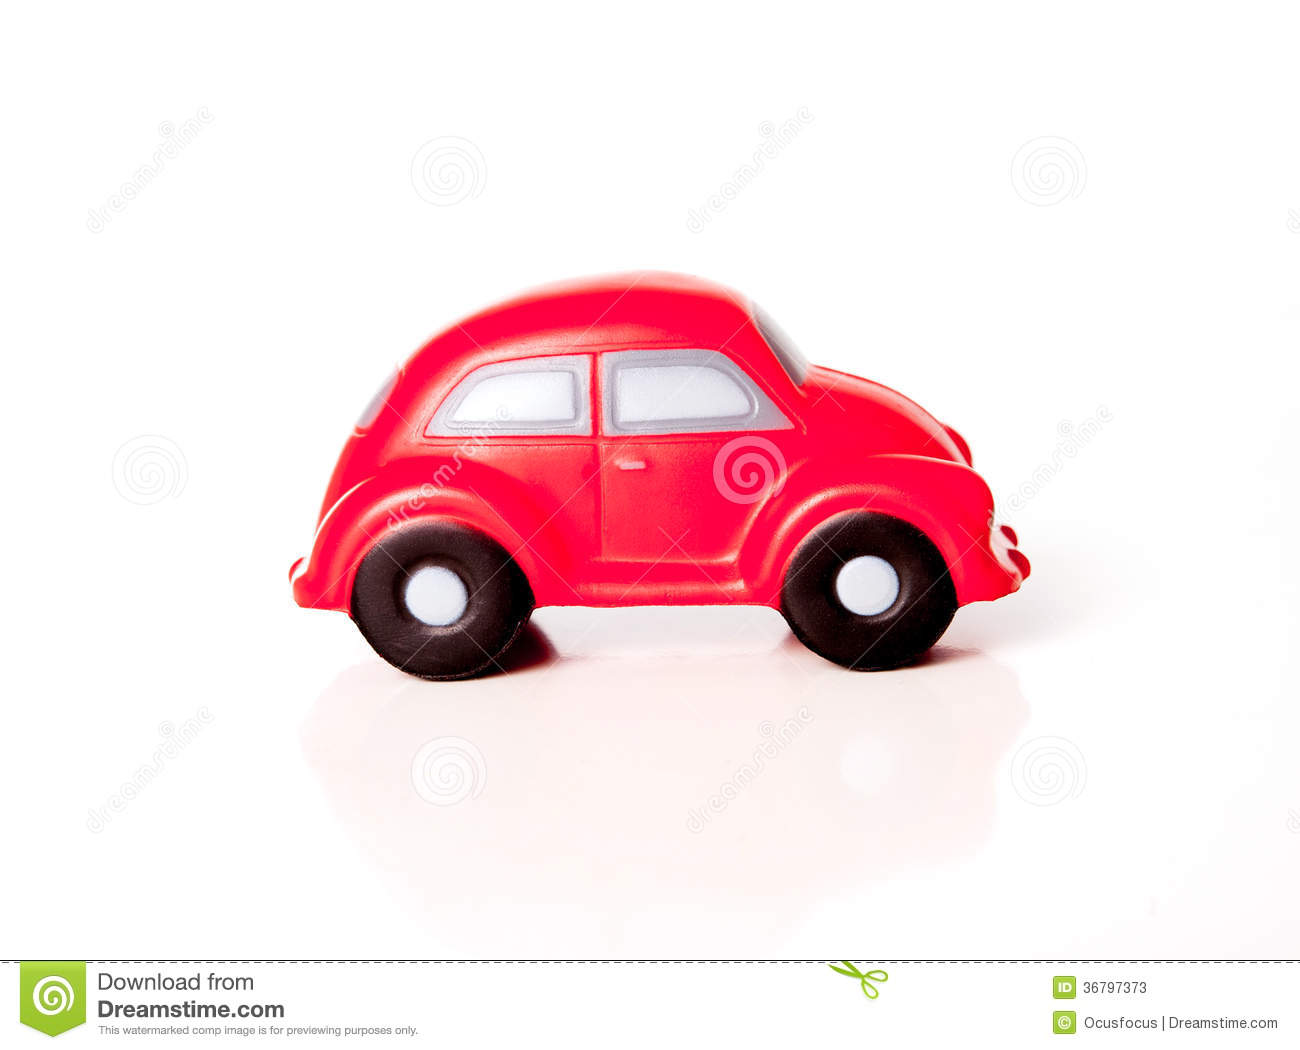 close-up of a red toy car on a white background stock image